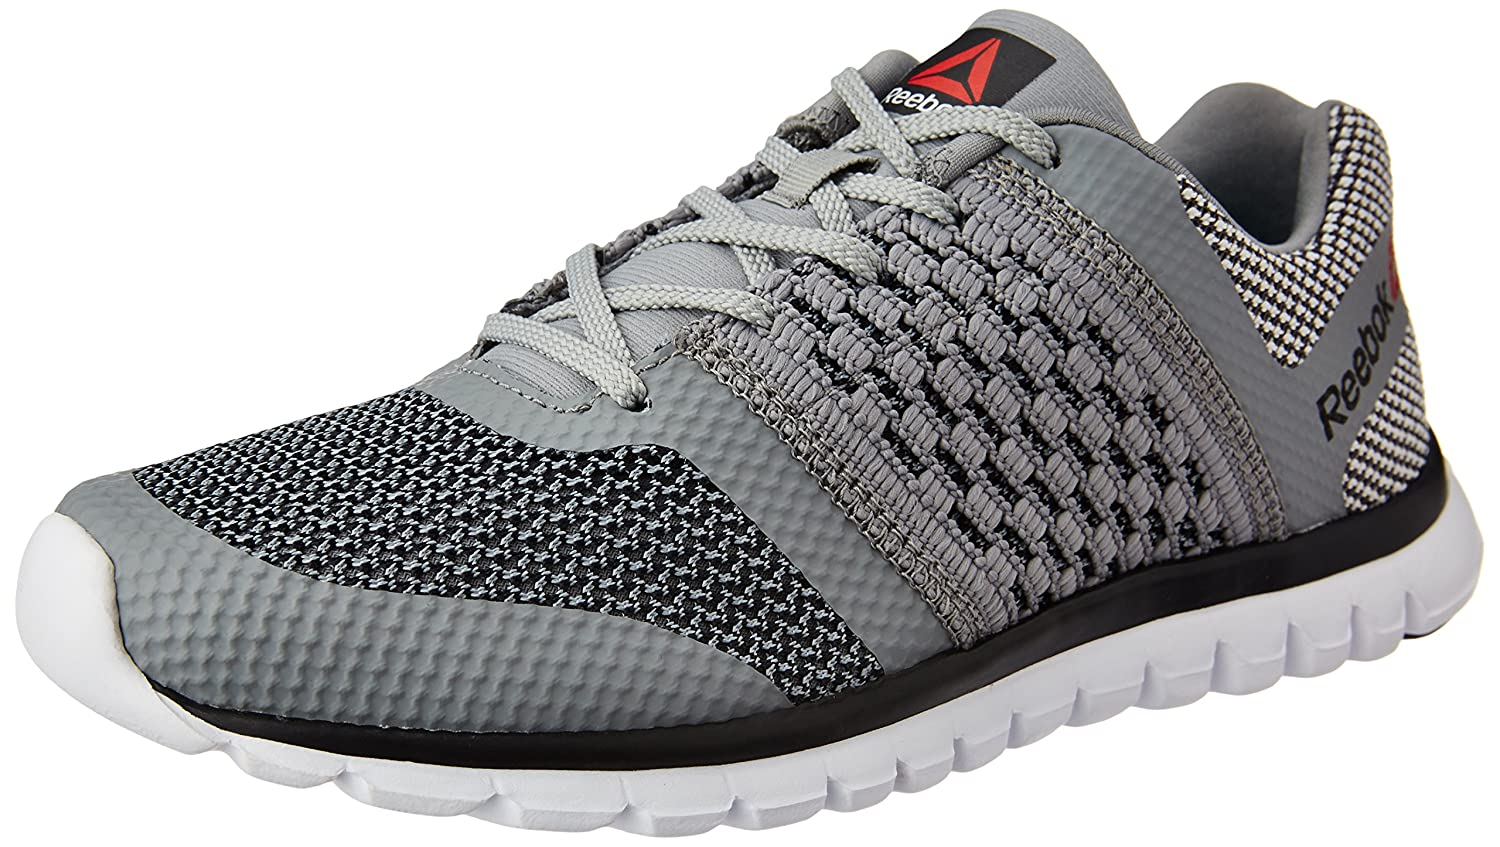 1685859e4bf7 Reebok Women s Sublite Transition Flat Grey